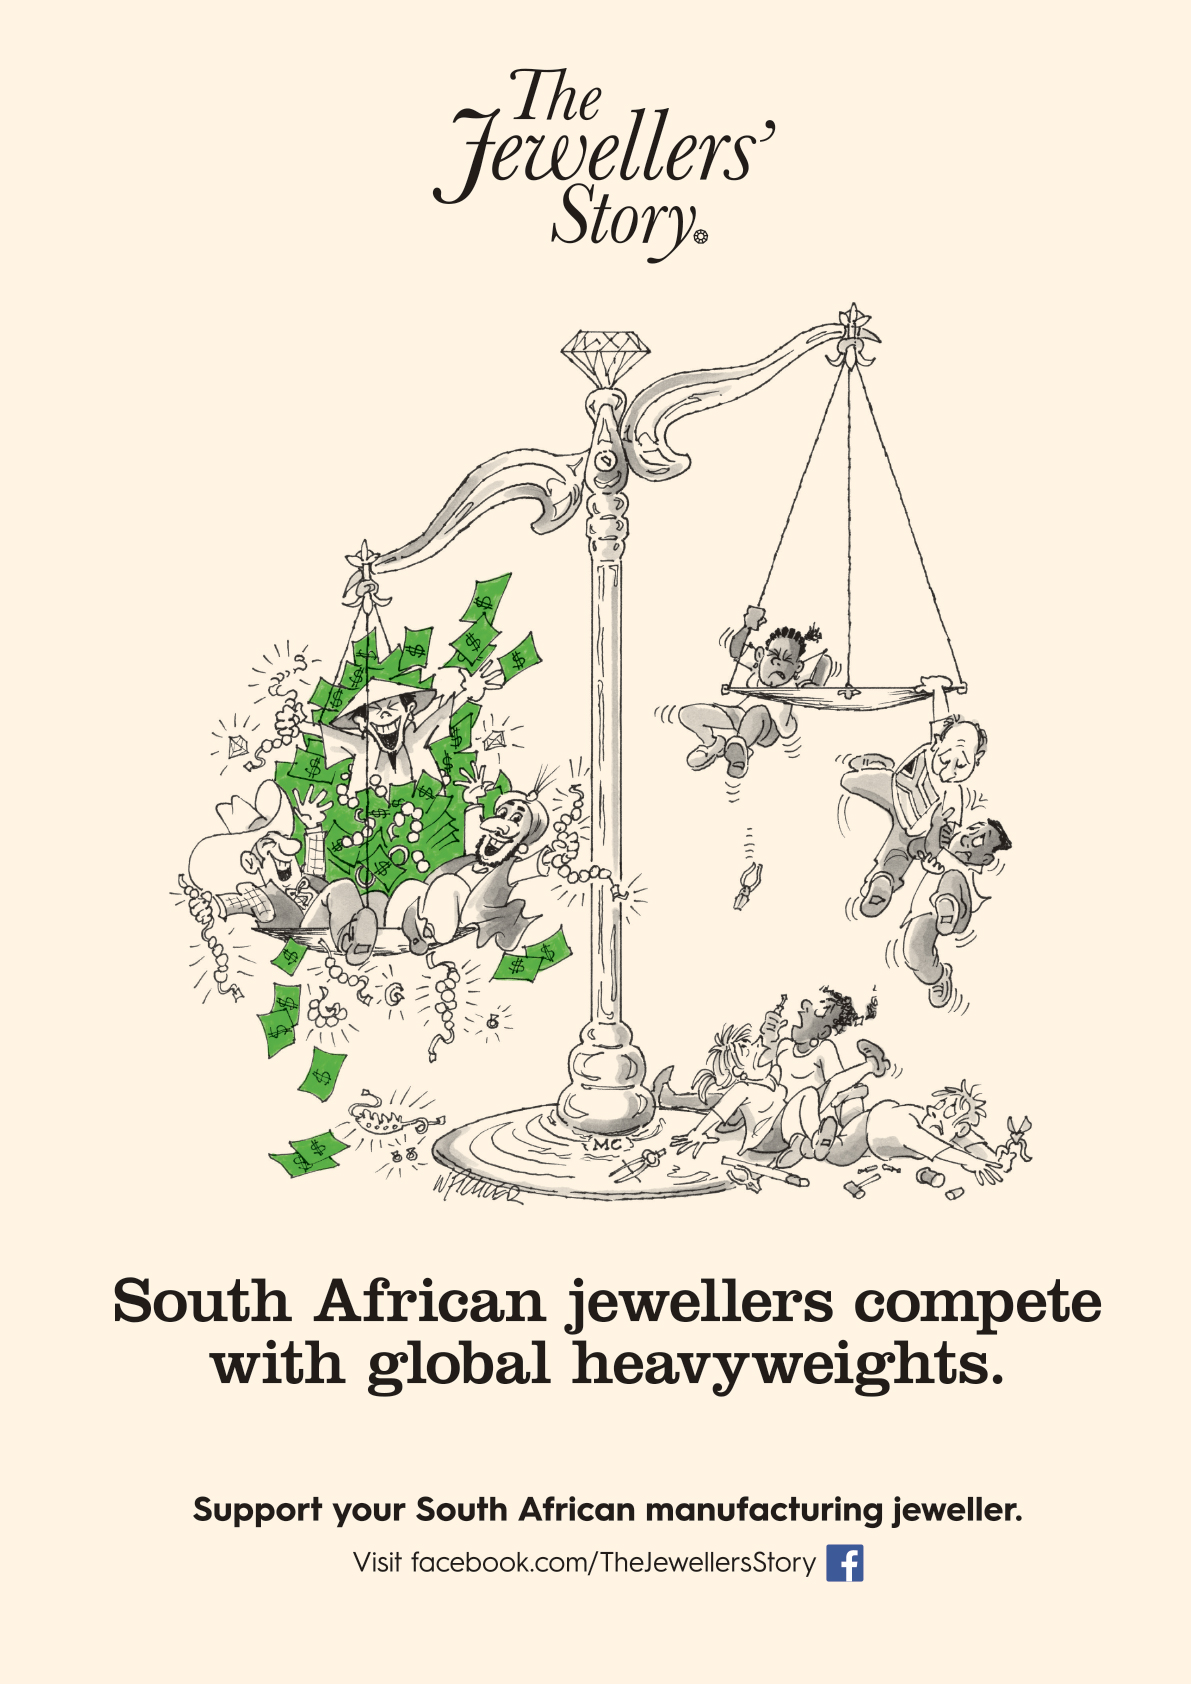 South African jewellers compete with global heavyweights